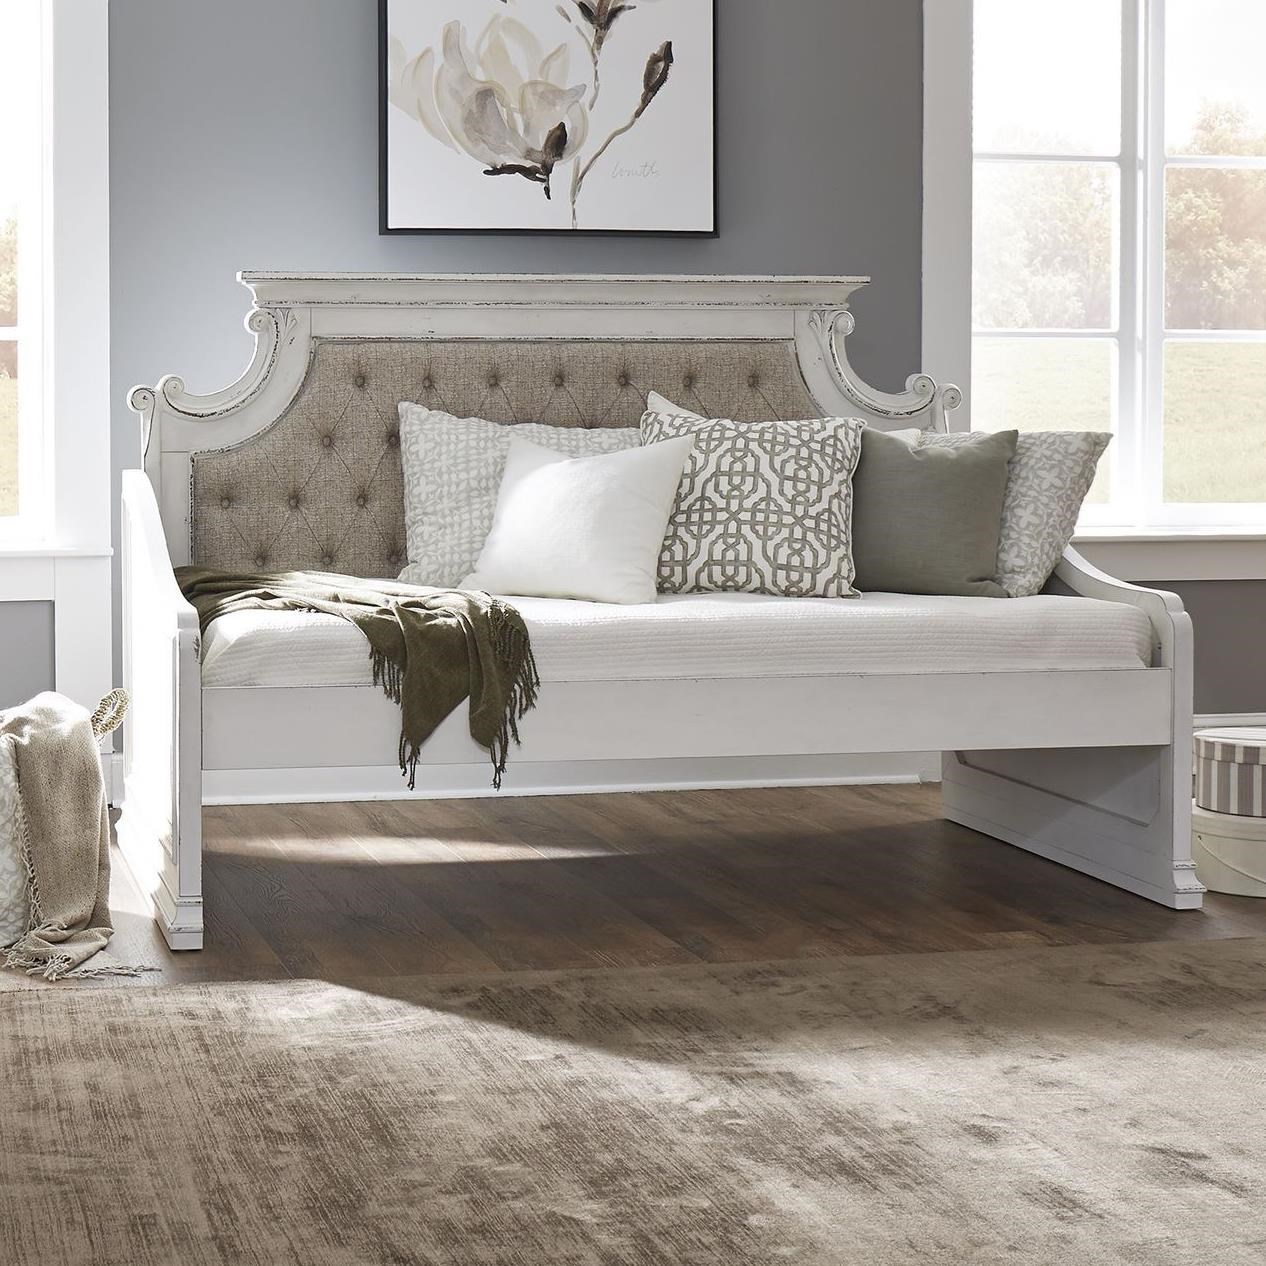 Magnolia Manor Twin Upholstered Daybed by Liberty Furniture at Bullard Furniture